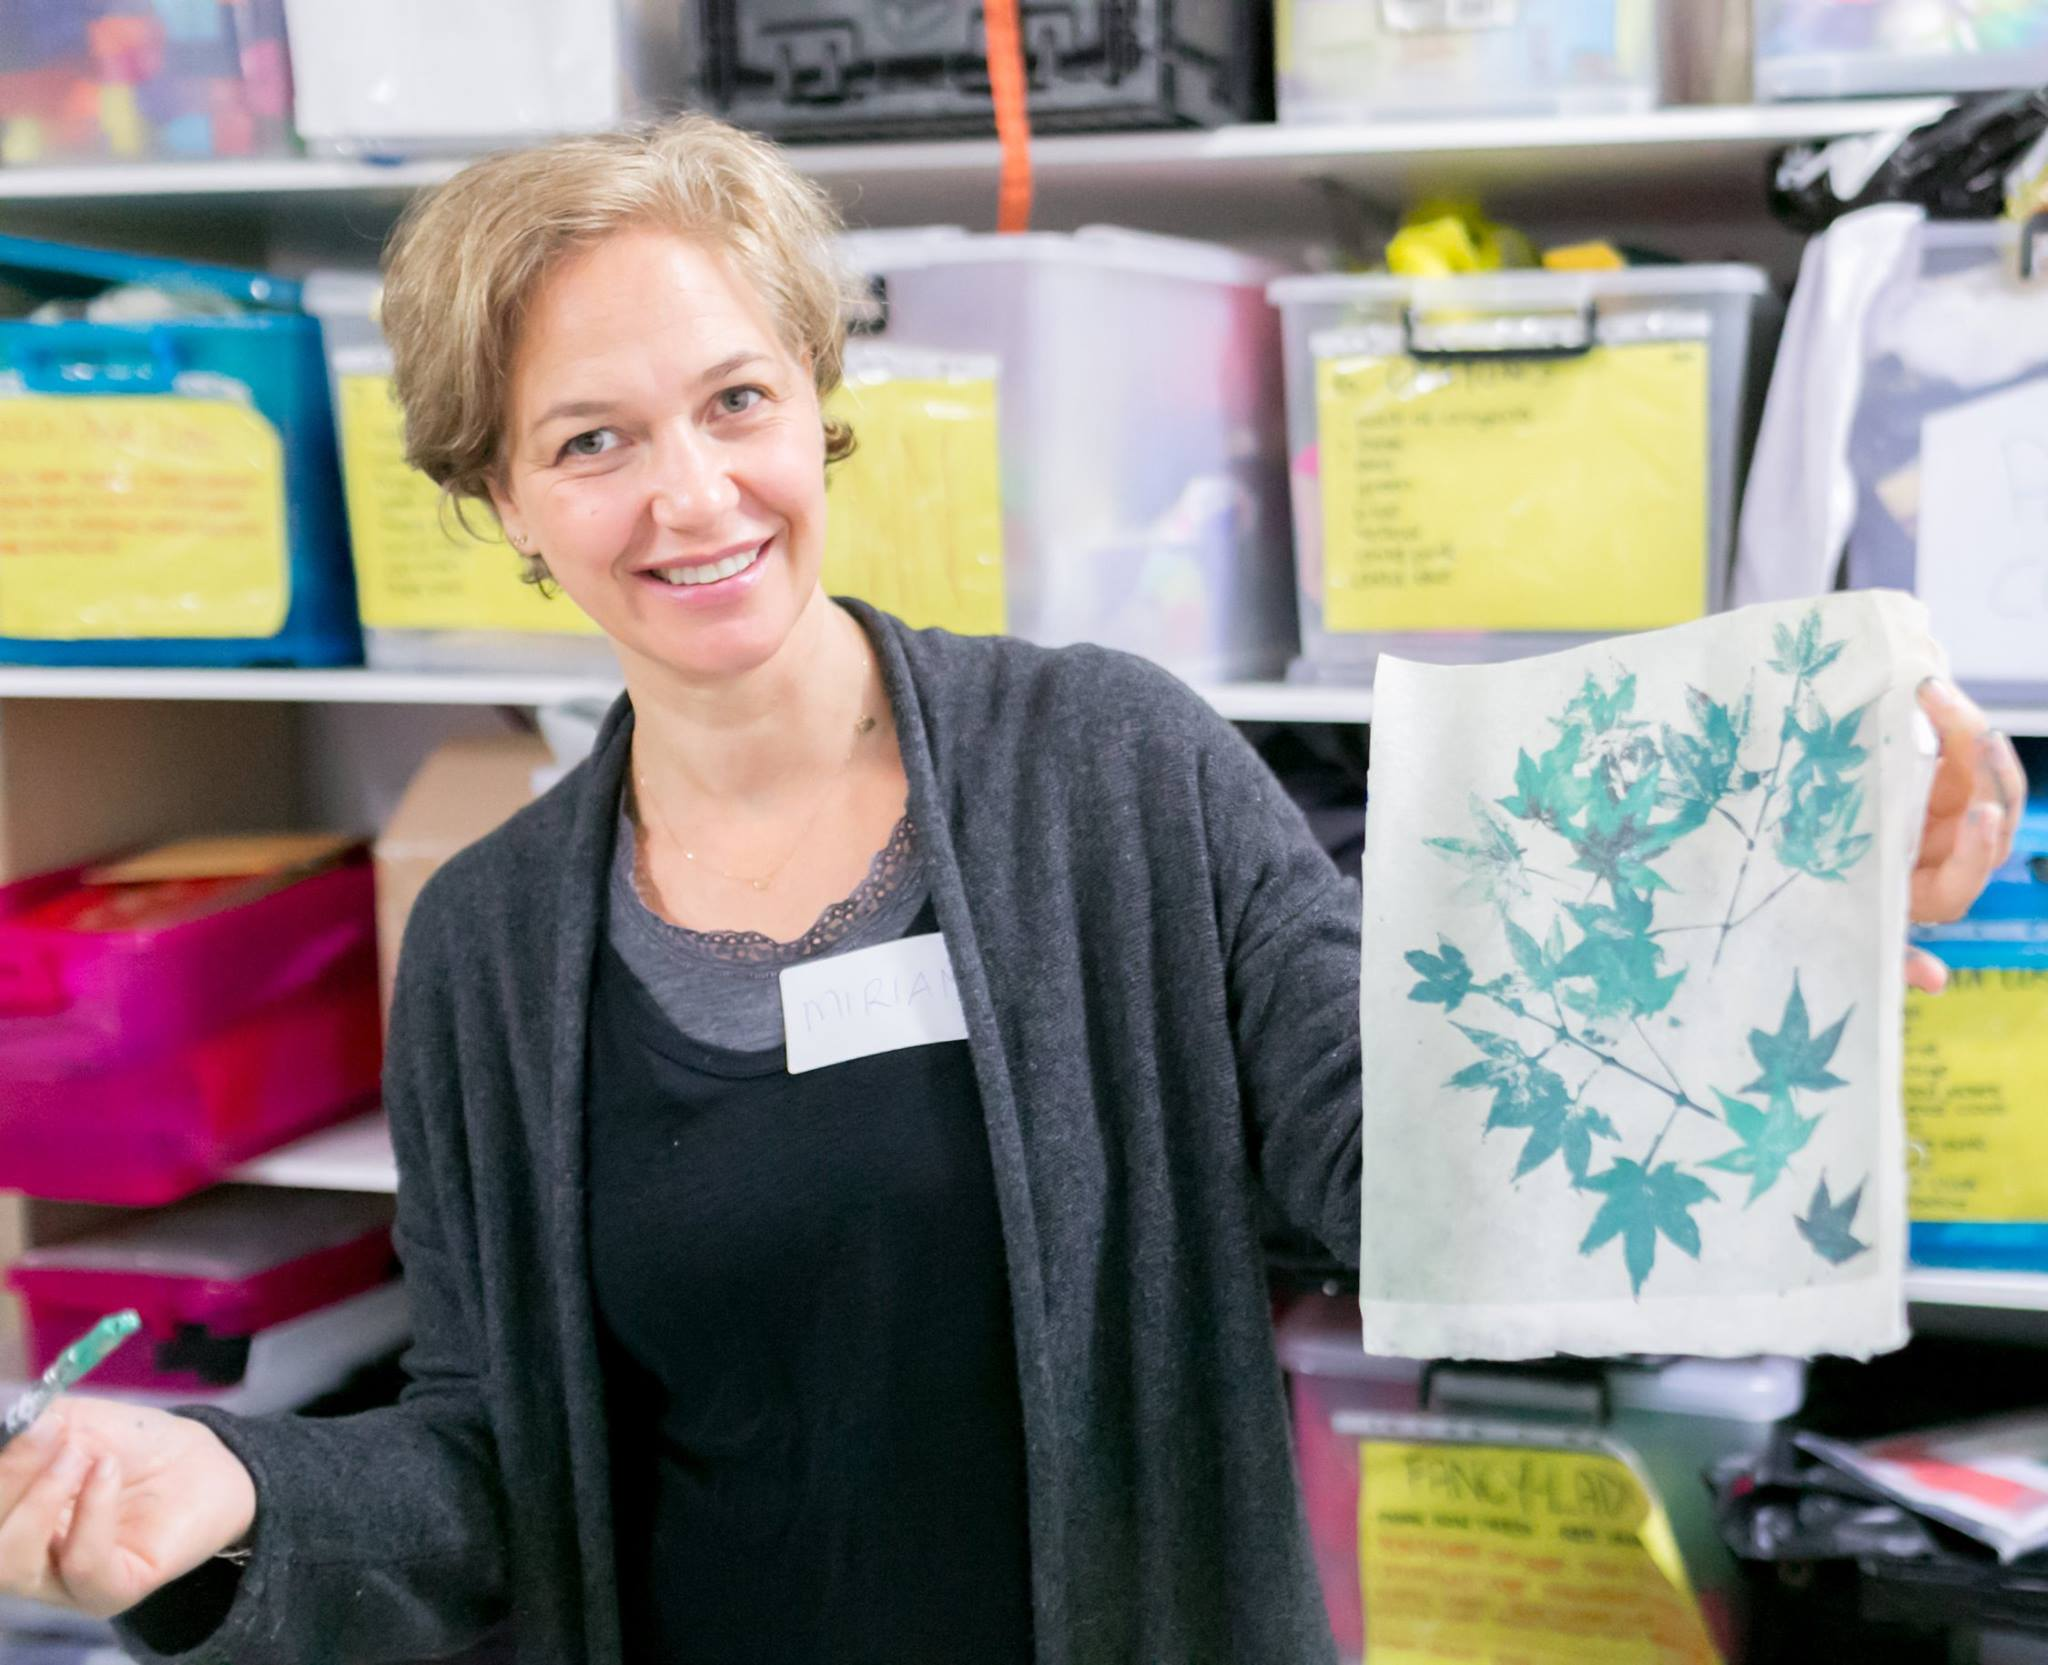 Printed leaves from the creative workshop facilitated by artist Louise Trevitt